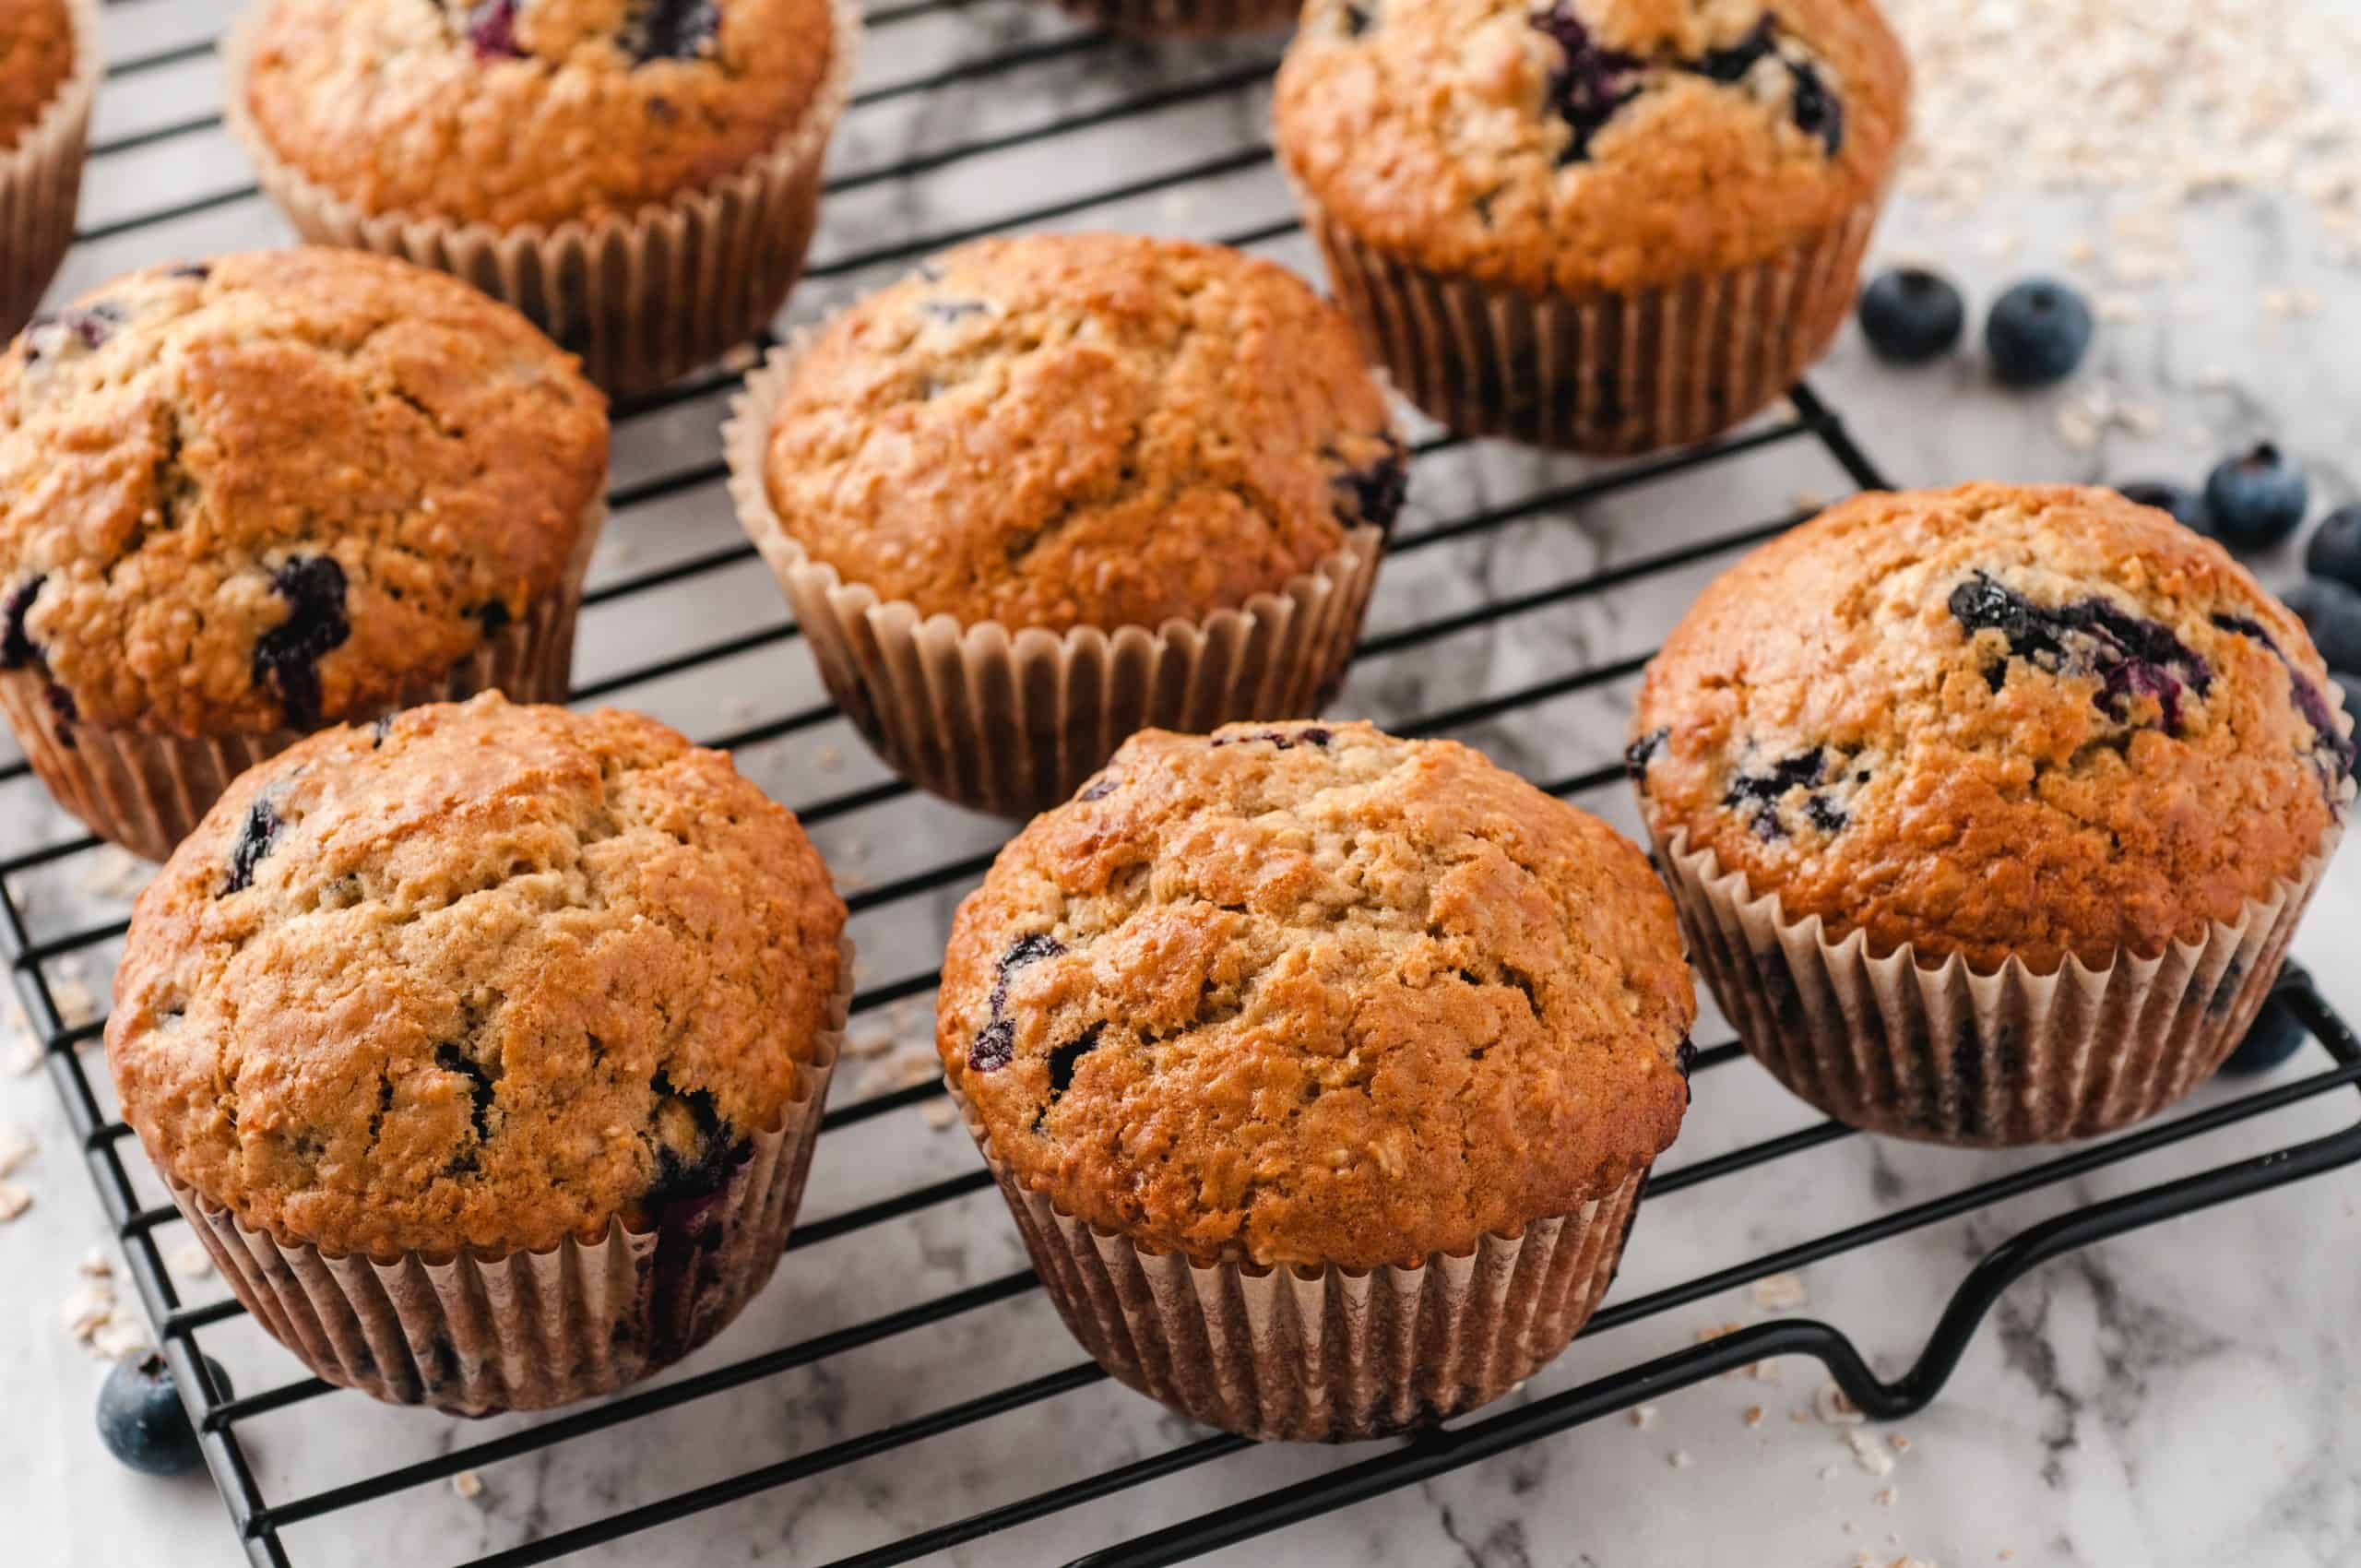 Fresh baked blueberry muffins on a wire rack.